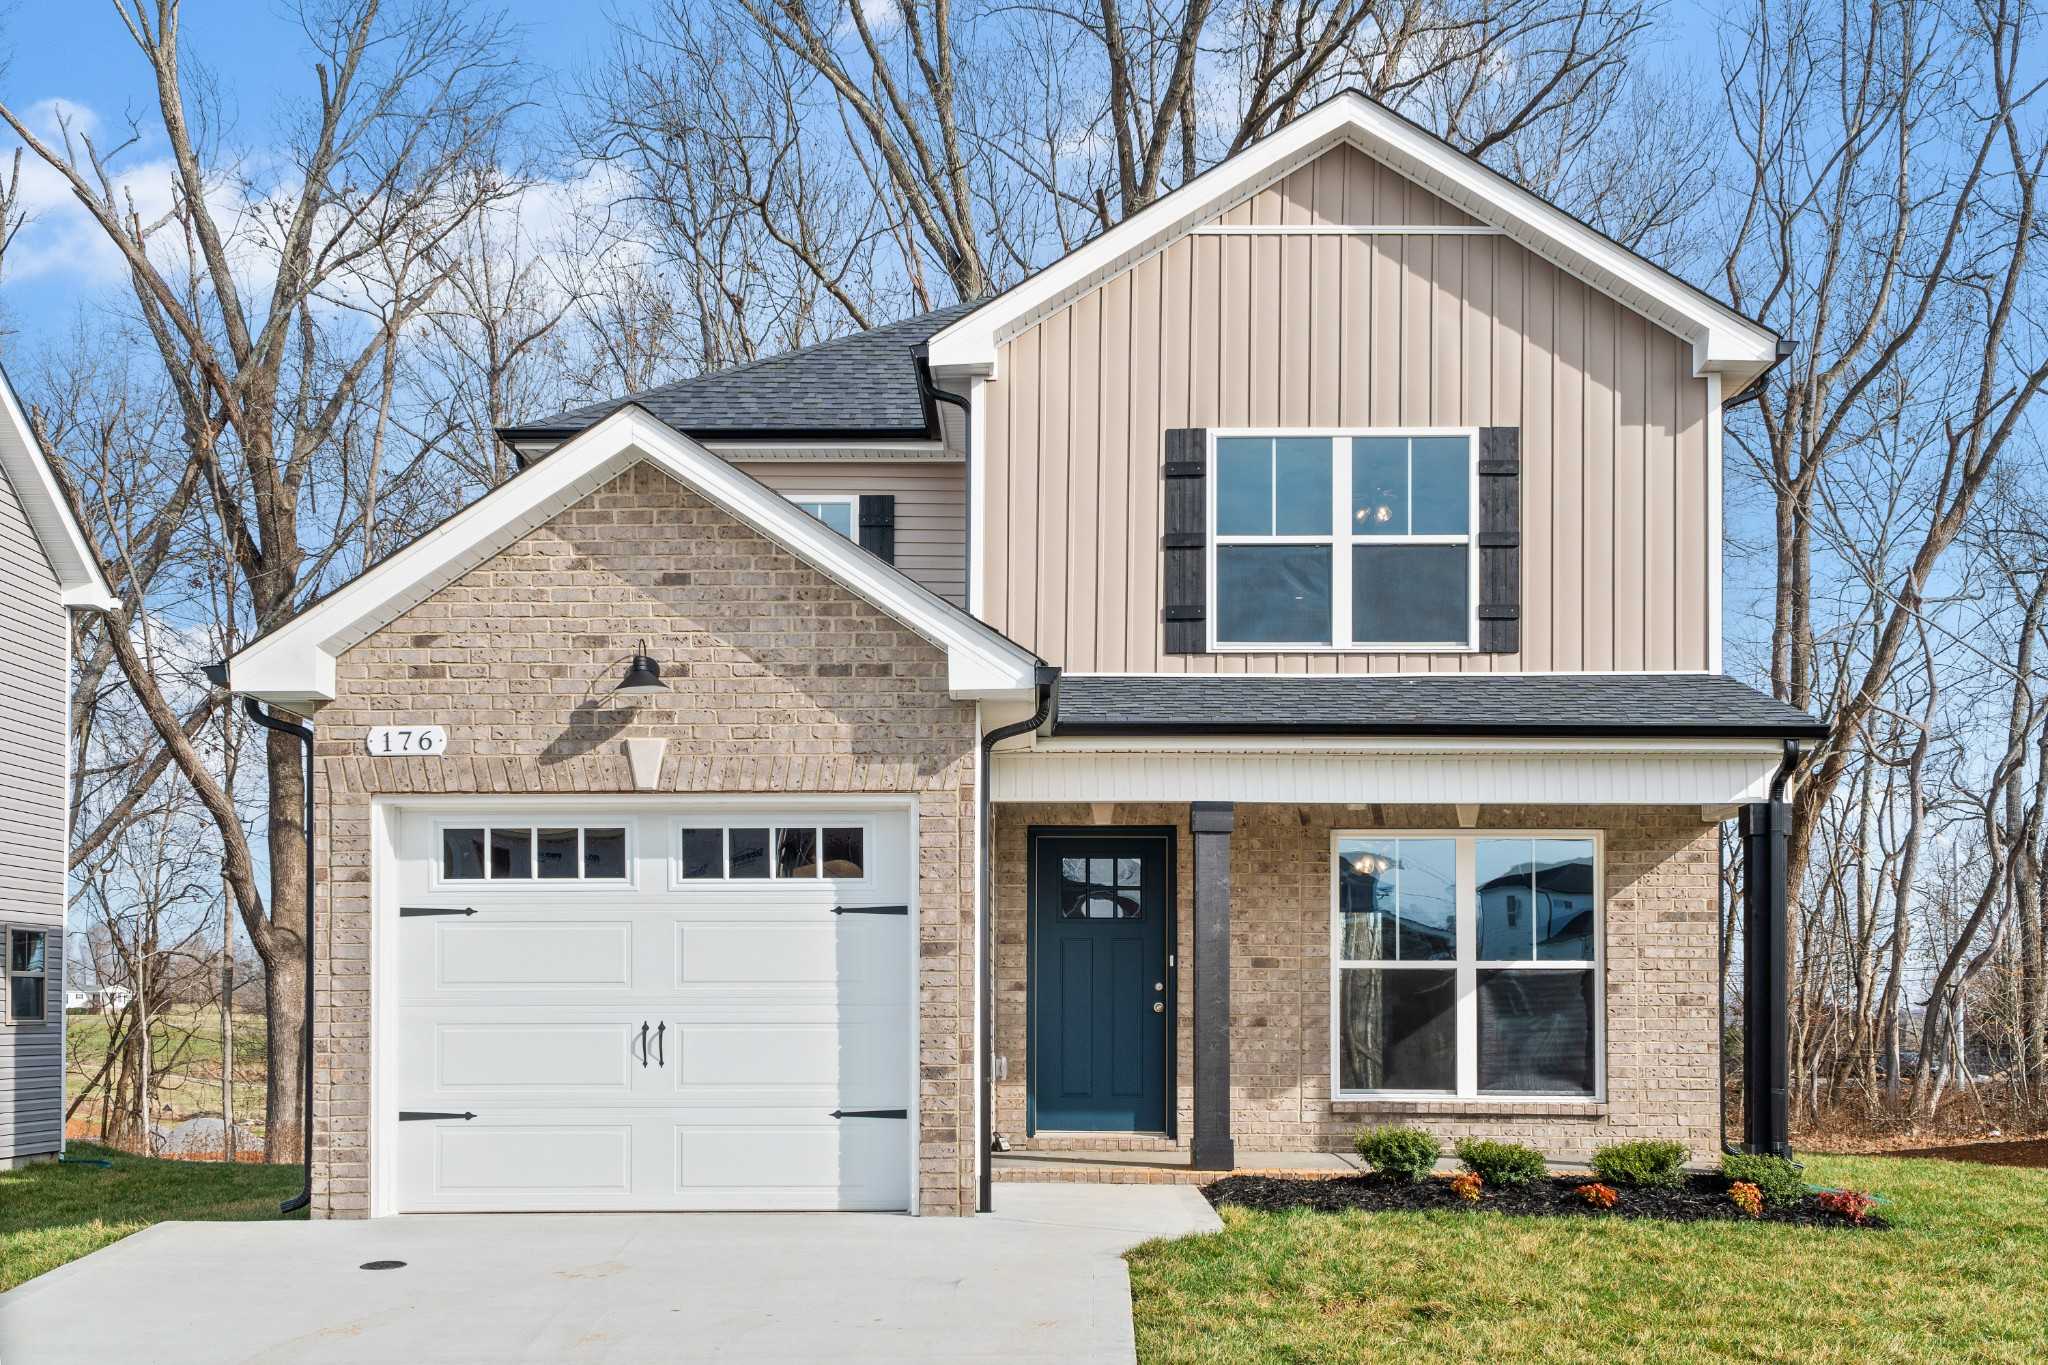 Welcome Home to Old Mill Station - NEW Exclusive Boutique Community Conveniently Located Close to Fort Campbell - PRESOLD HOMES AVAILABLE Starting at $170,000 - Pick Your Selections - White & Grey Cabinetry/Granite Counters/Stainless Steel Appliances ALL STANDARD! Hurry These Homes Will sell FAST!